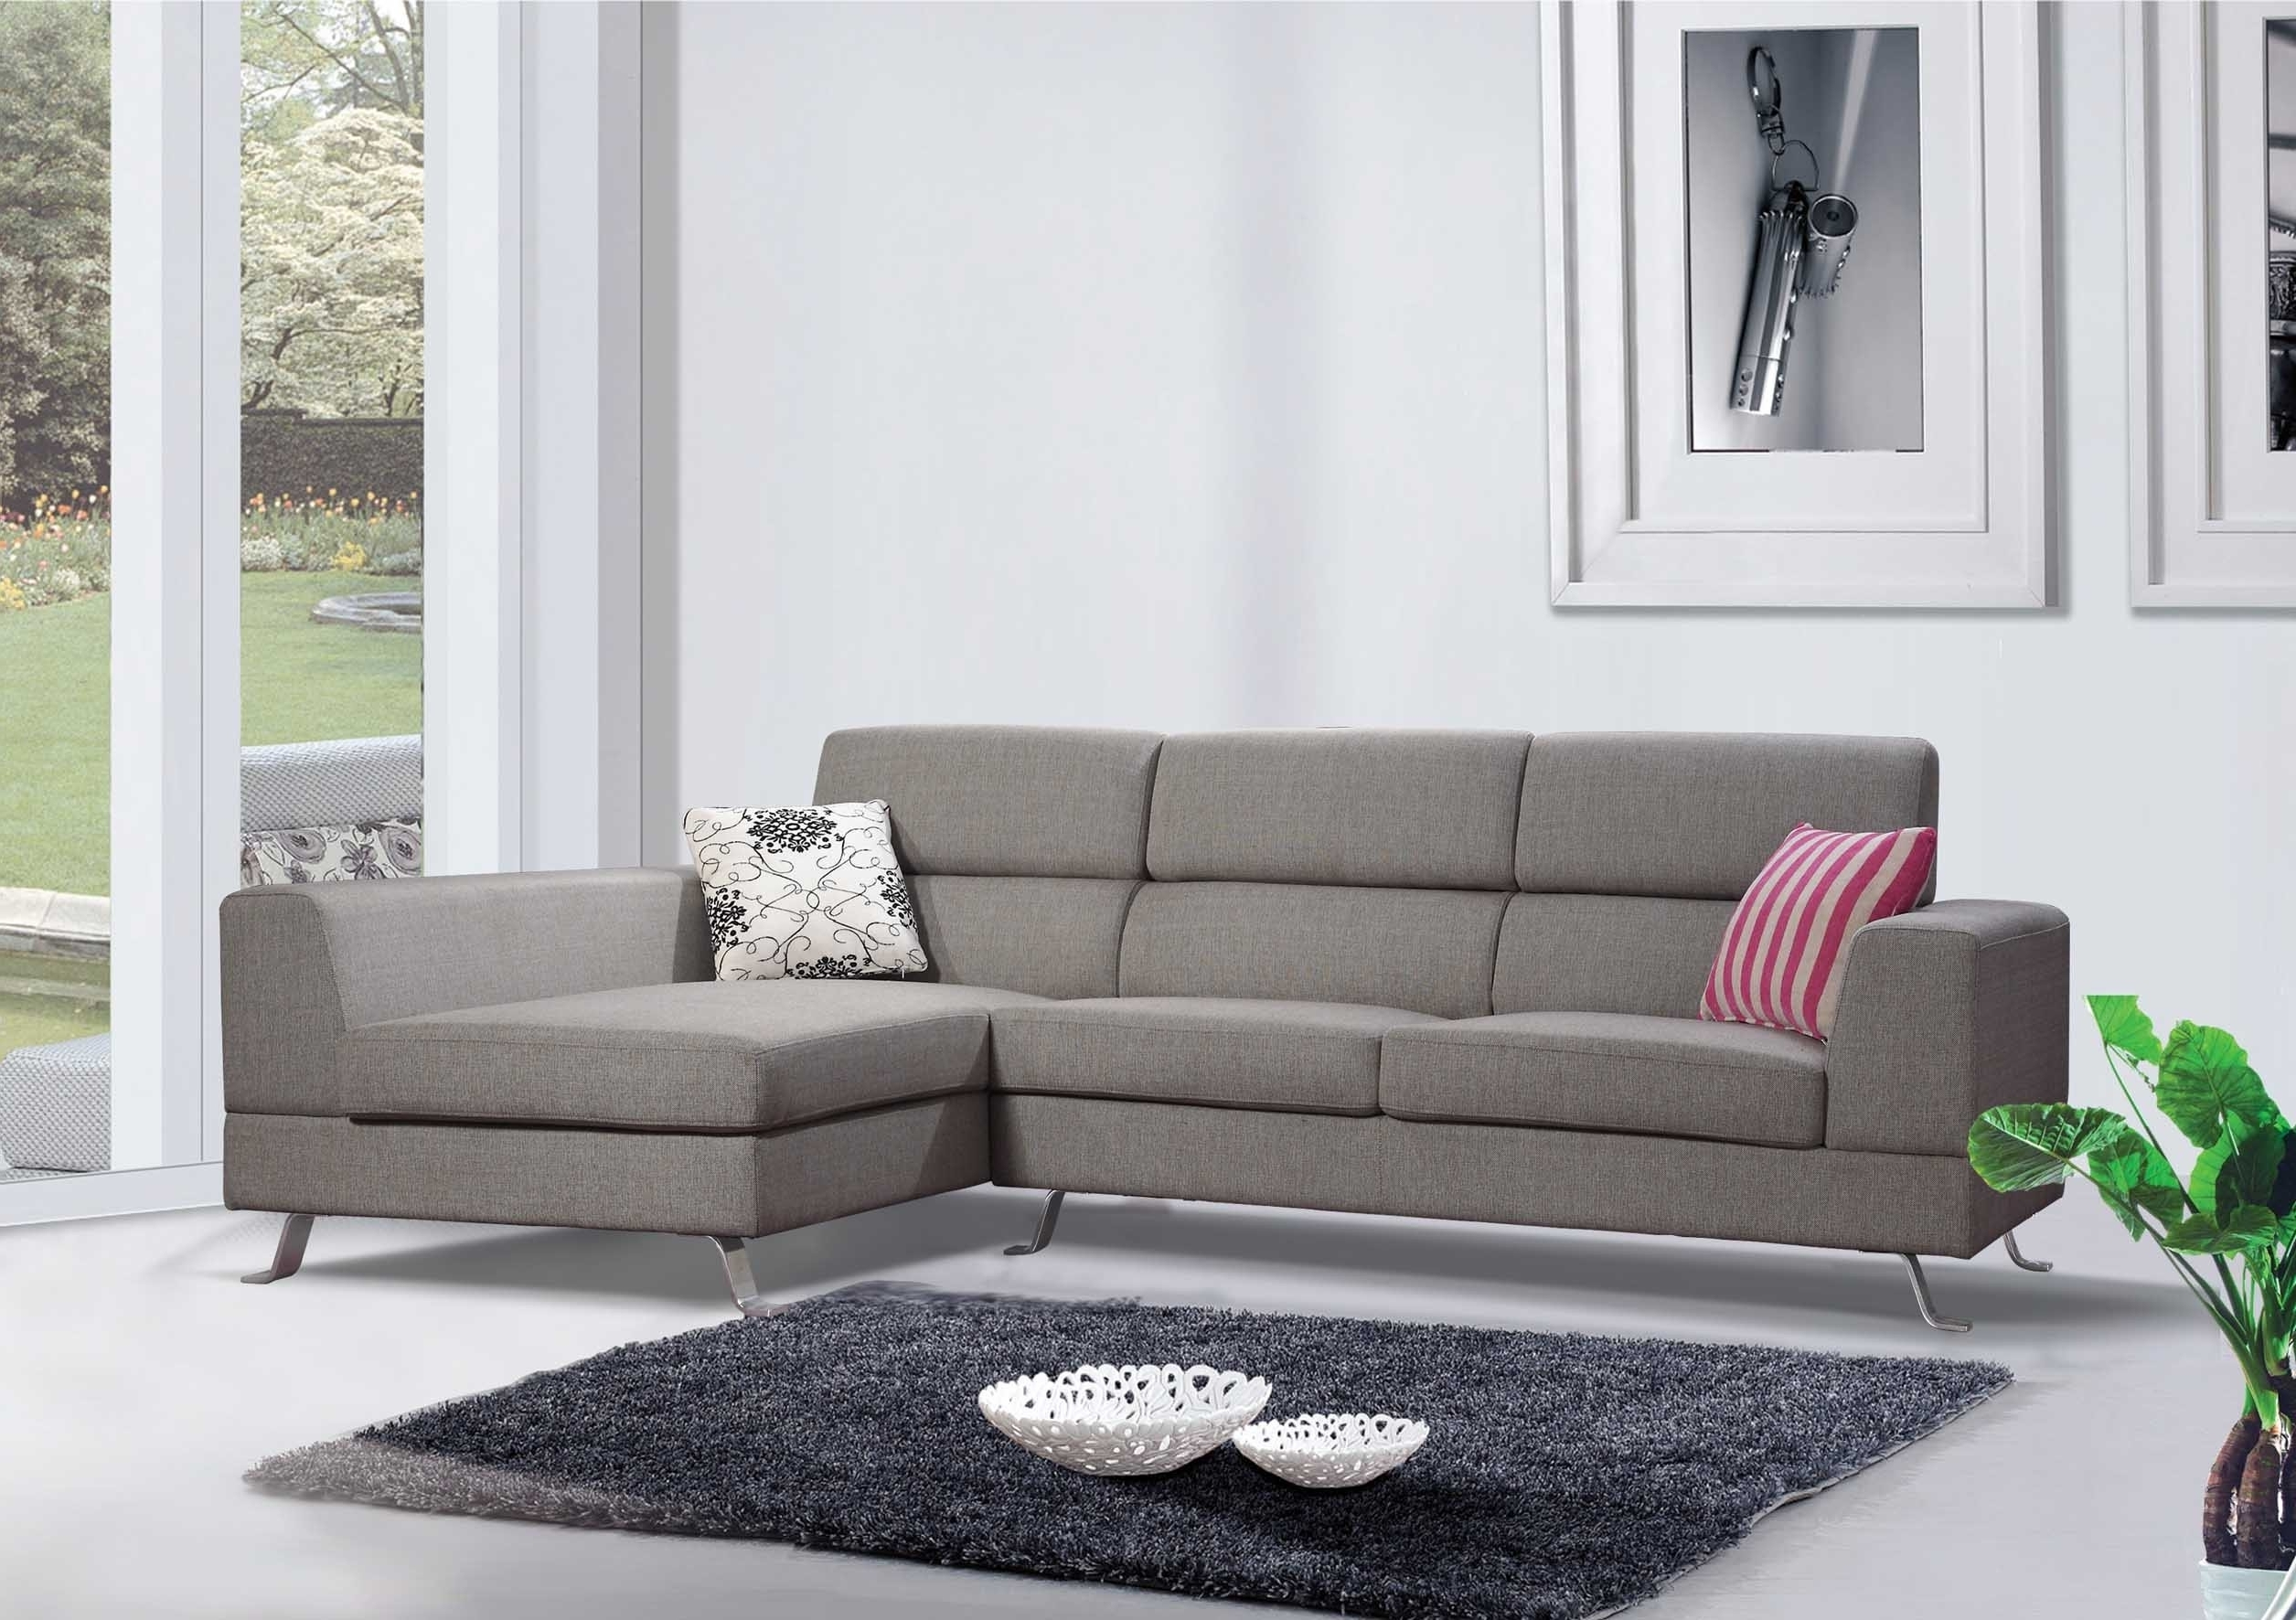 Furniture : Microfiber Costco Sectional Sofa Furnitures With Regard To Popular 100X100 Sectional Sofas (View 7 of 20)